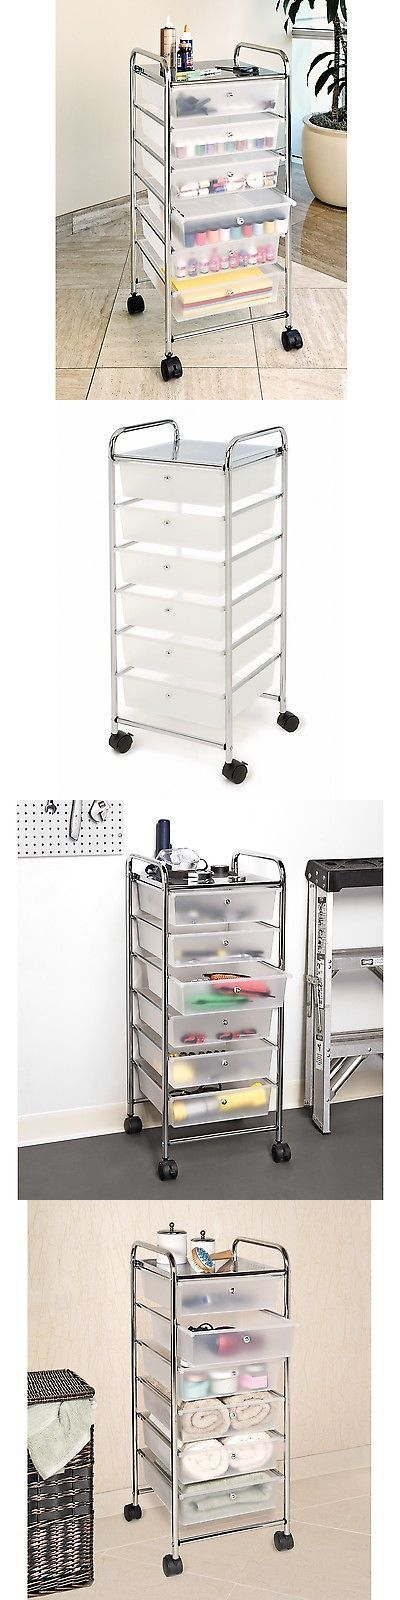 Salon and Spa Supplies: Barber Shop Equipment Supplies Storage Accessories Stuff Cart Trolley Salon Best -> BUY IT NOW ONLY: $67.95 on eBay!